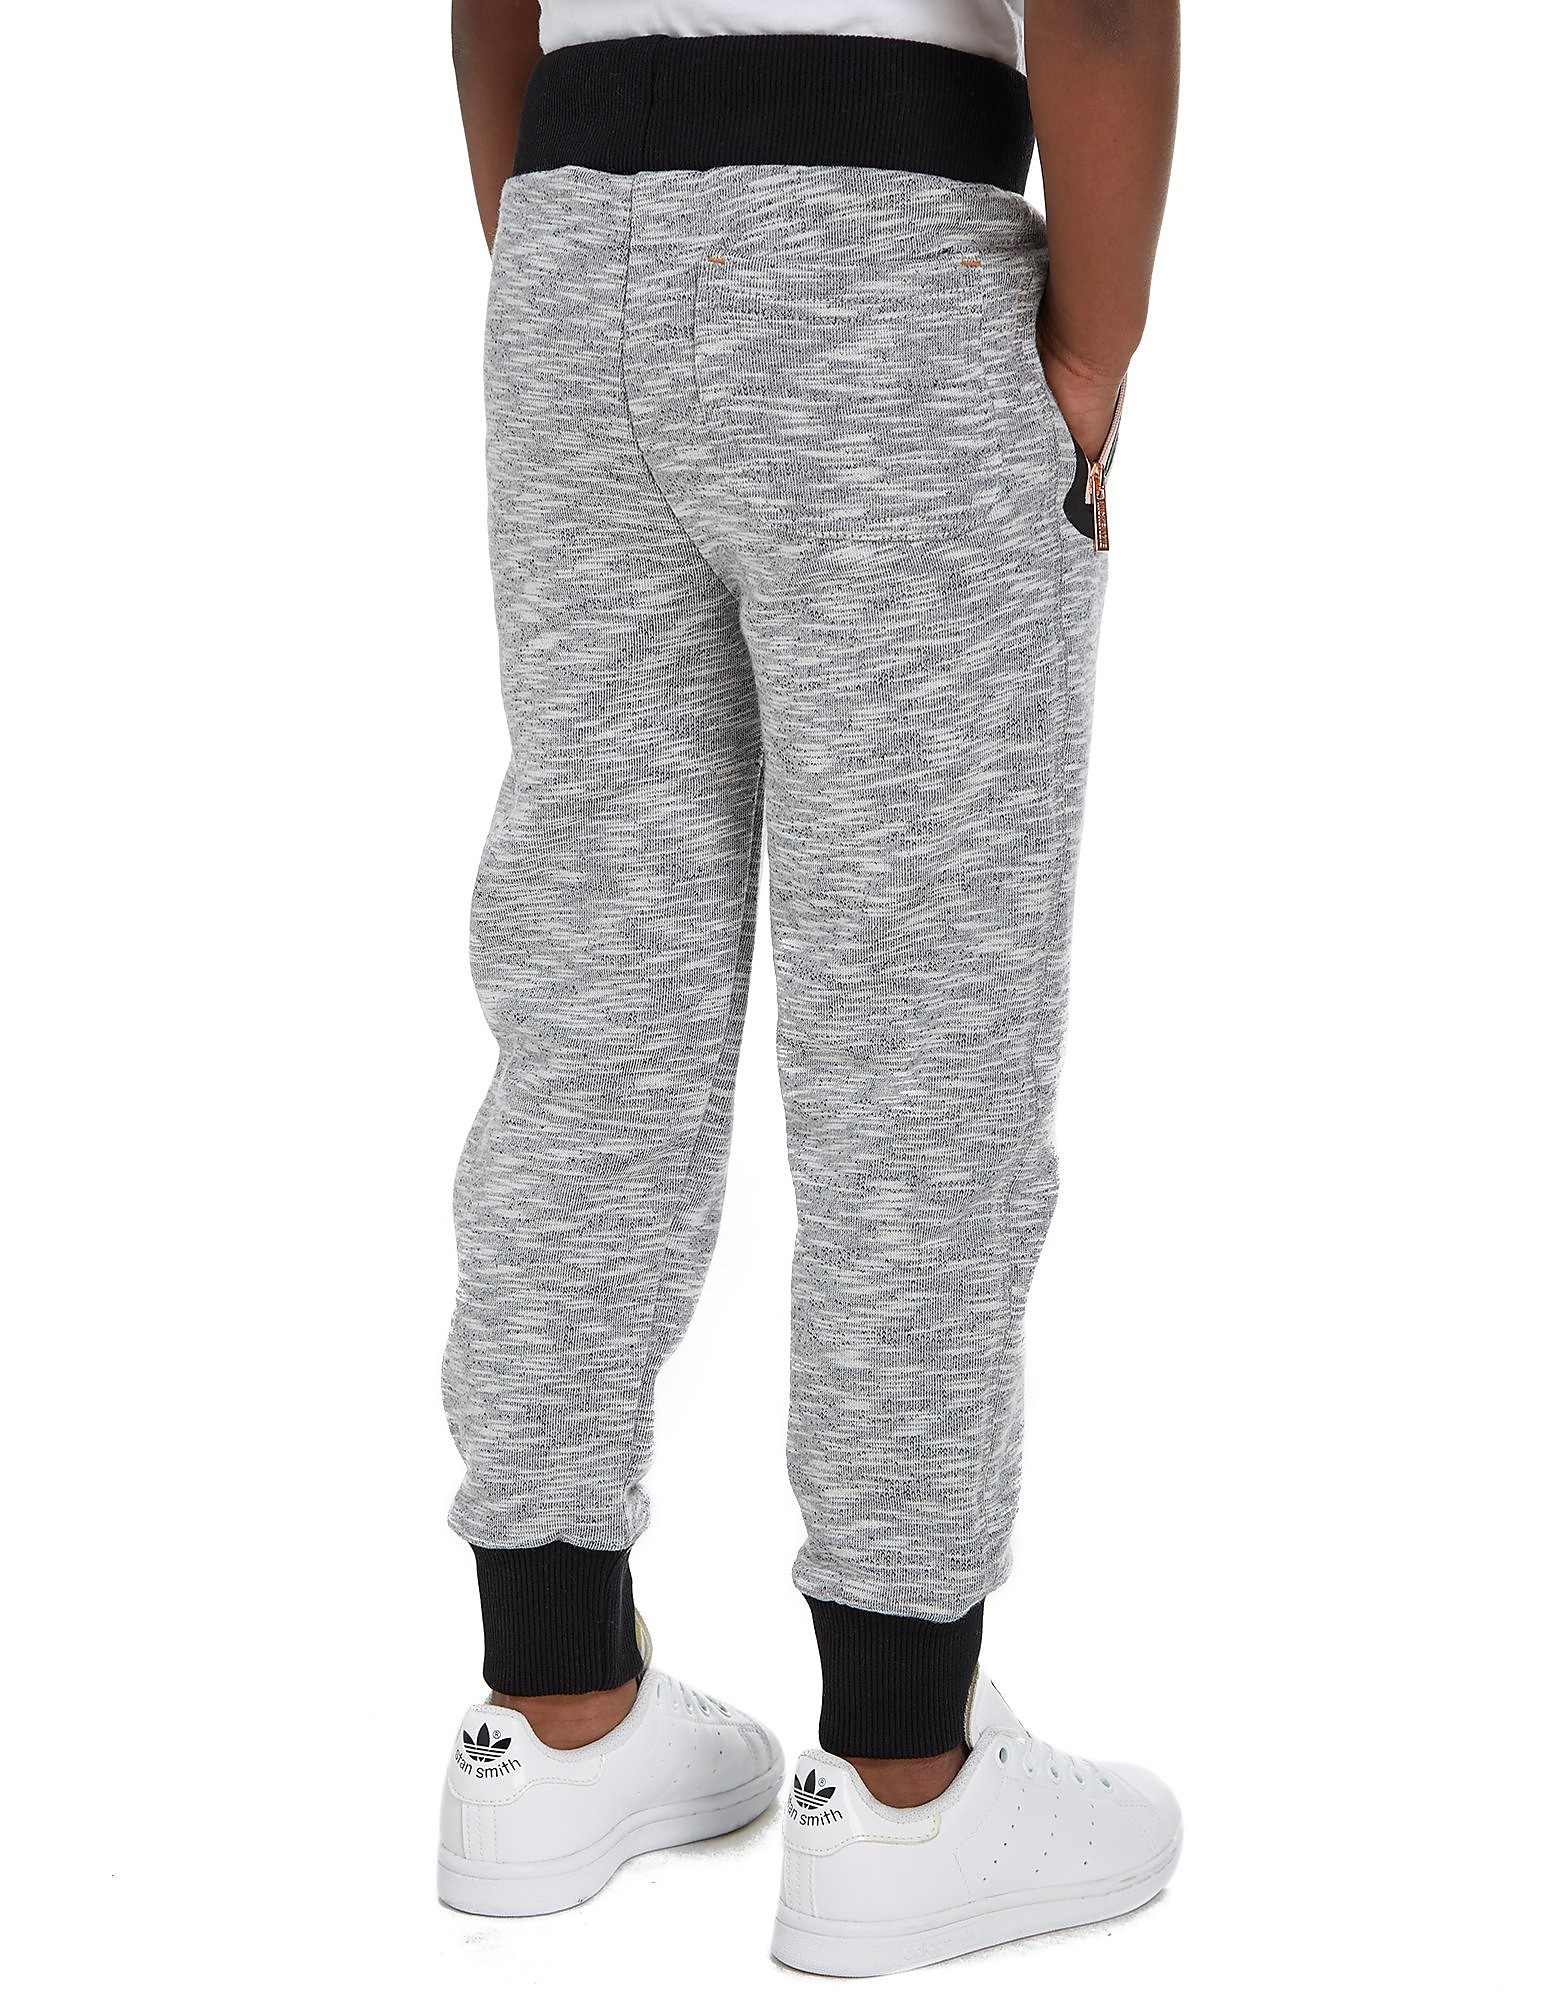 McKenzie Girls' Gracie Pants Children